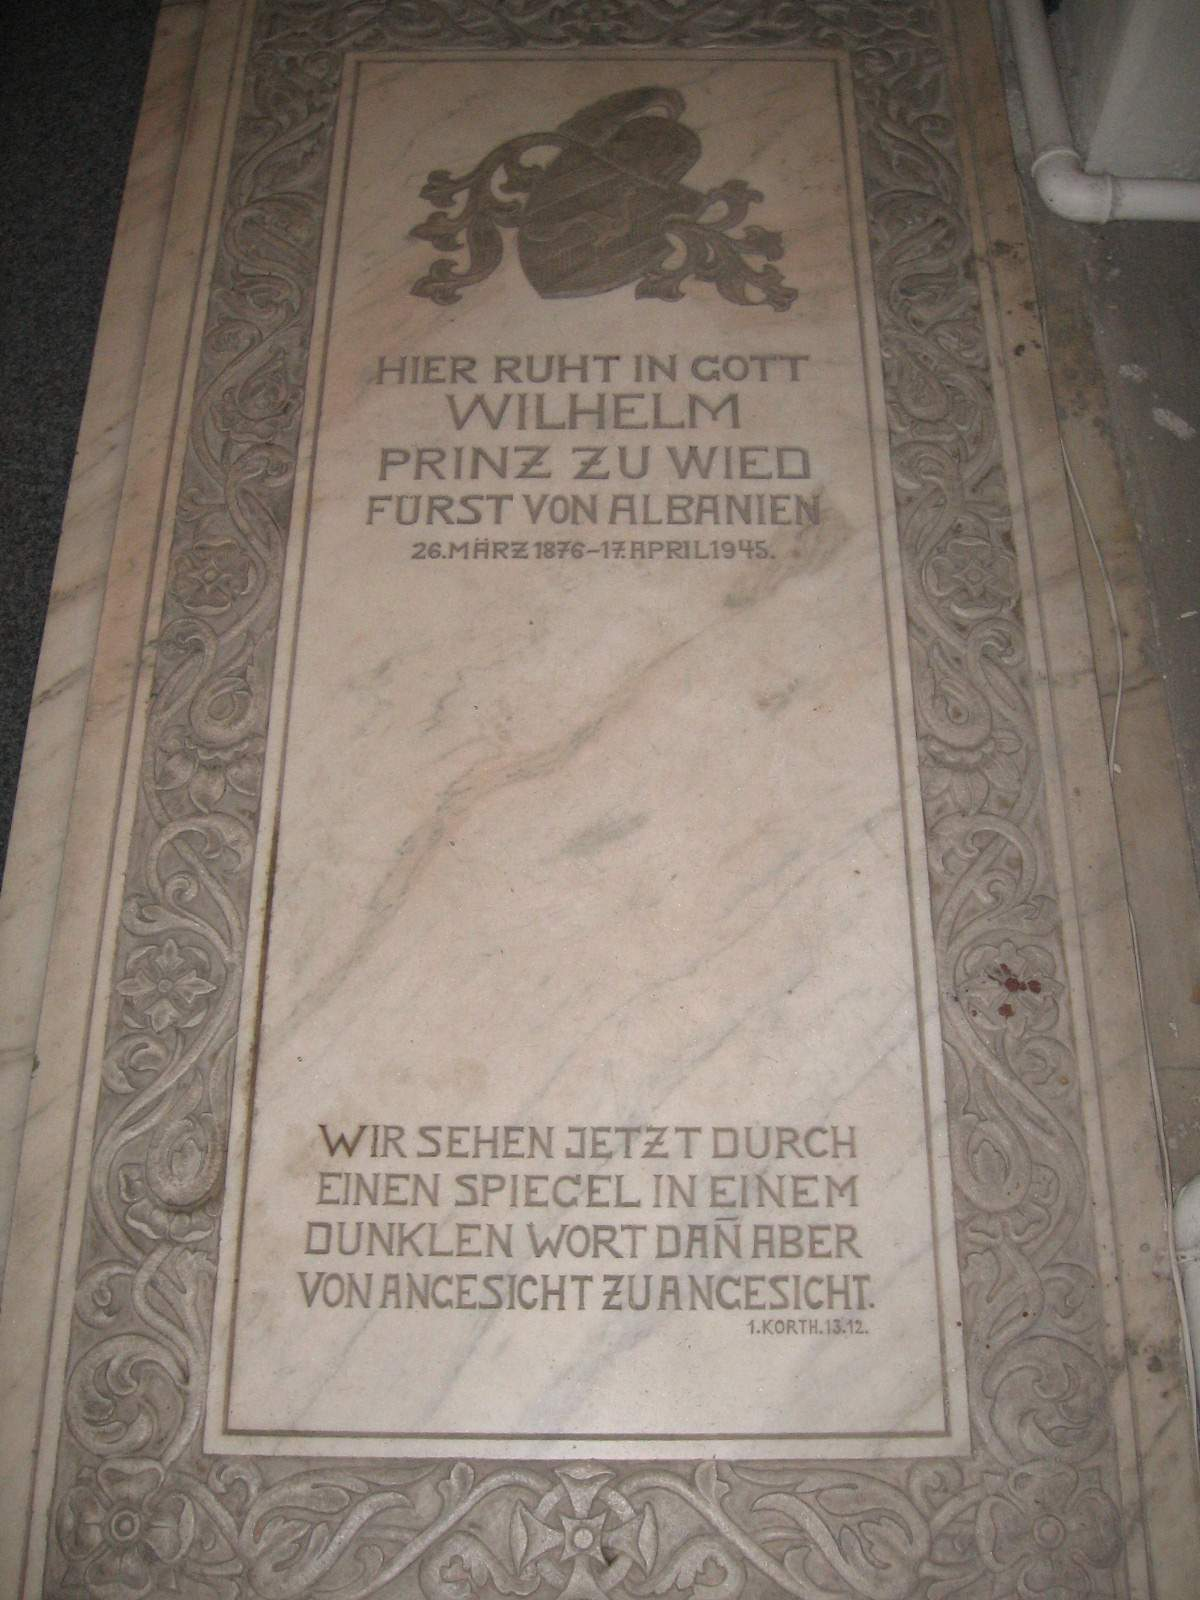 https://i0.wp.com/upload.wikimedia.org/wikipedia/commons/5/5d/Grabstein_von_Wilhelm_zu_Wied.JPG